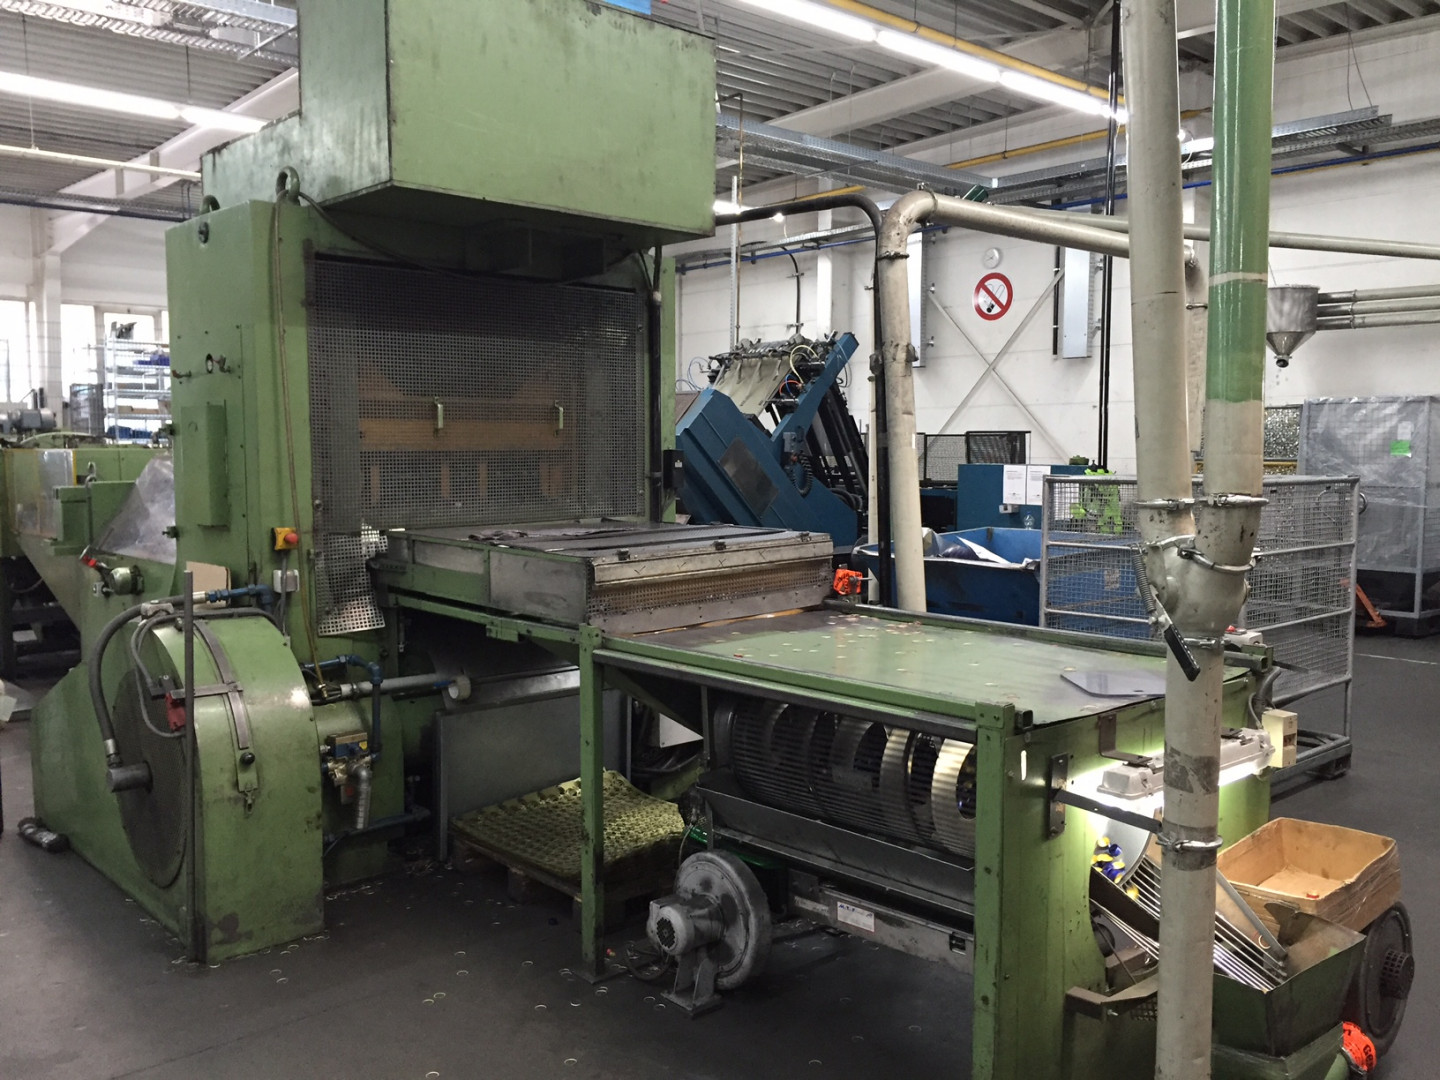 Naroska PSTAR-U1 sheetfeed press